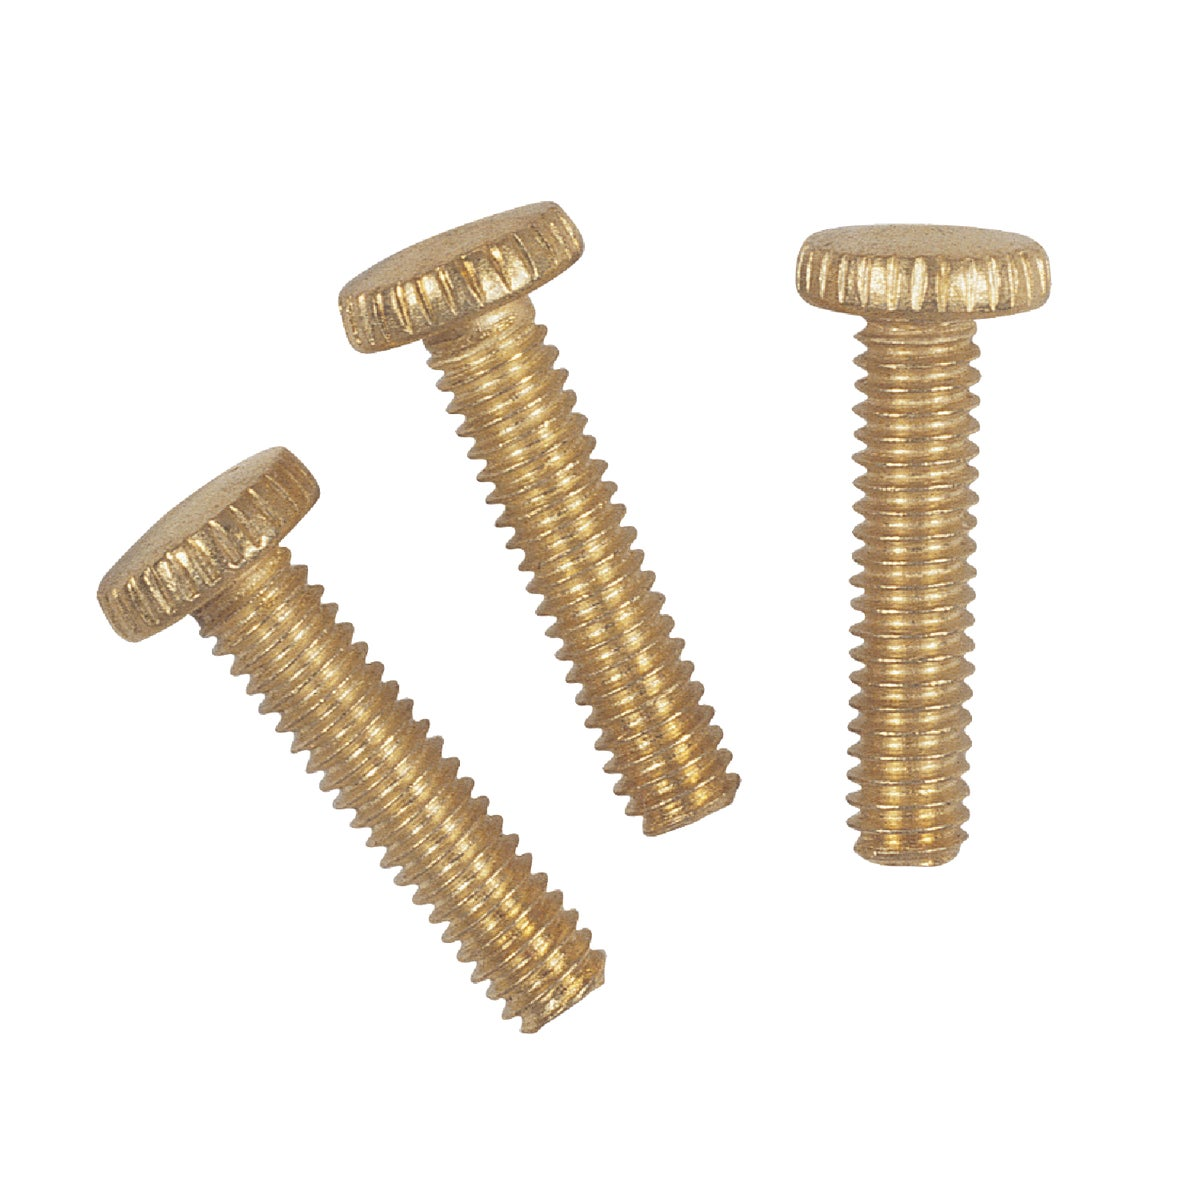 "1/2"" FIXTURE SCREW - 70632 by Westinghouse Lightng"